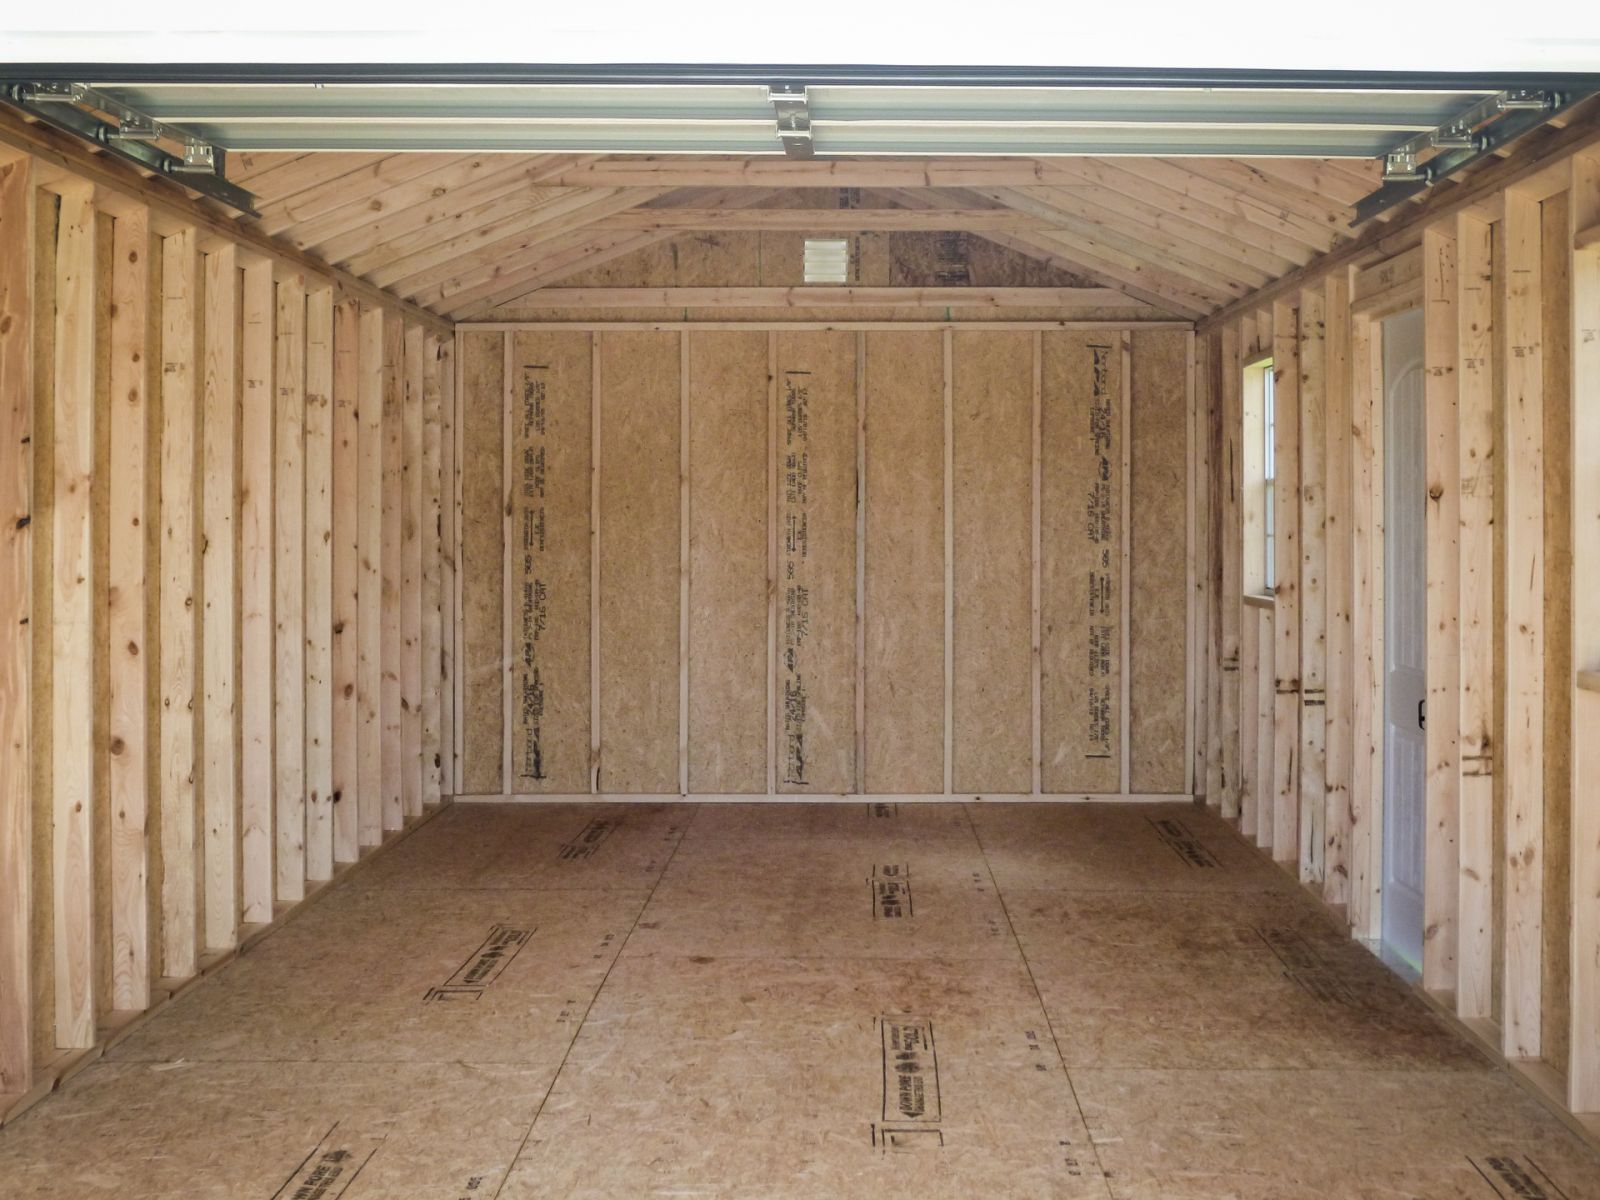 Interior of a portable garage shed for sale in Louisville, KY